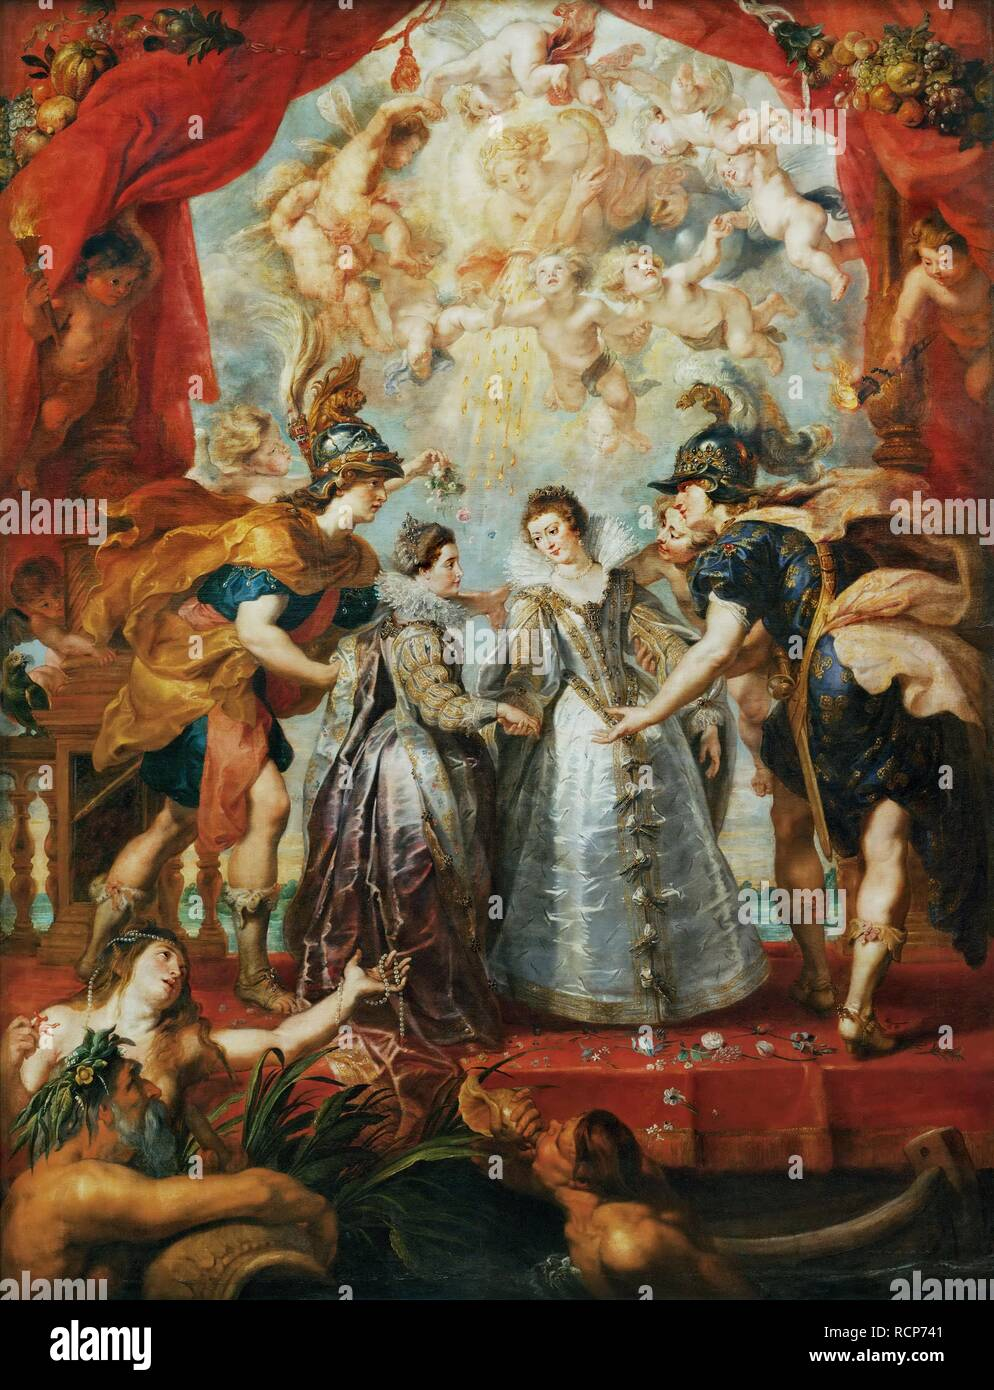 The Exchange of the Princesses at the Spanish Border. (The Marie de' Medici Cycle). Museum: Musee du Louvre, Paris. Author: Rubens, Pieter Paul. Stock Photo